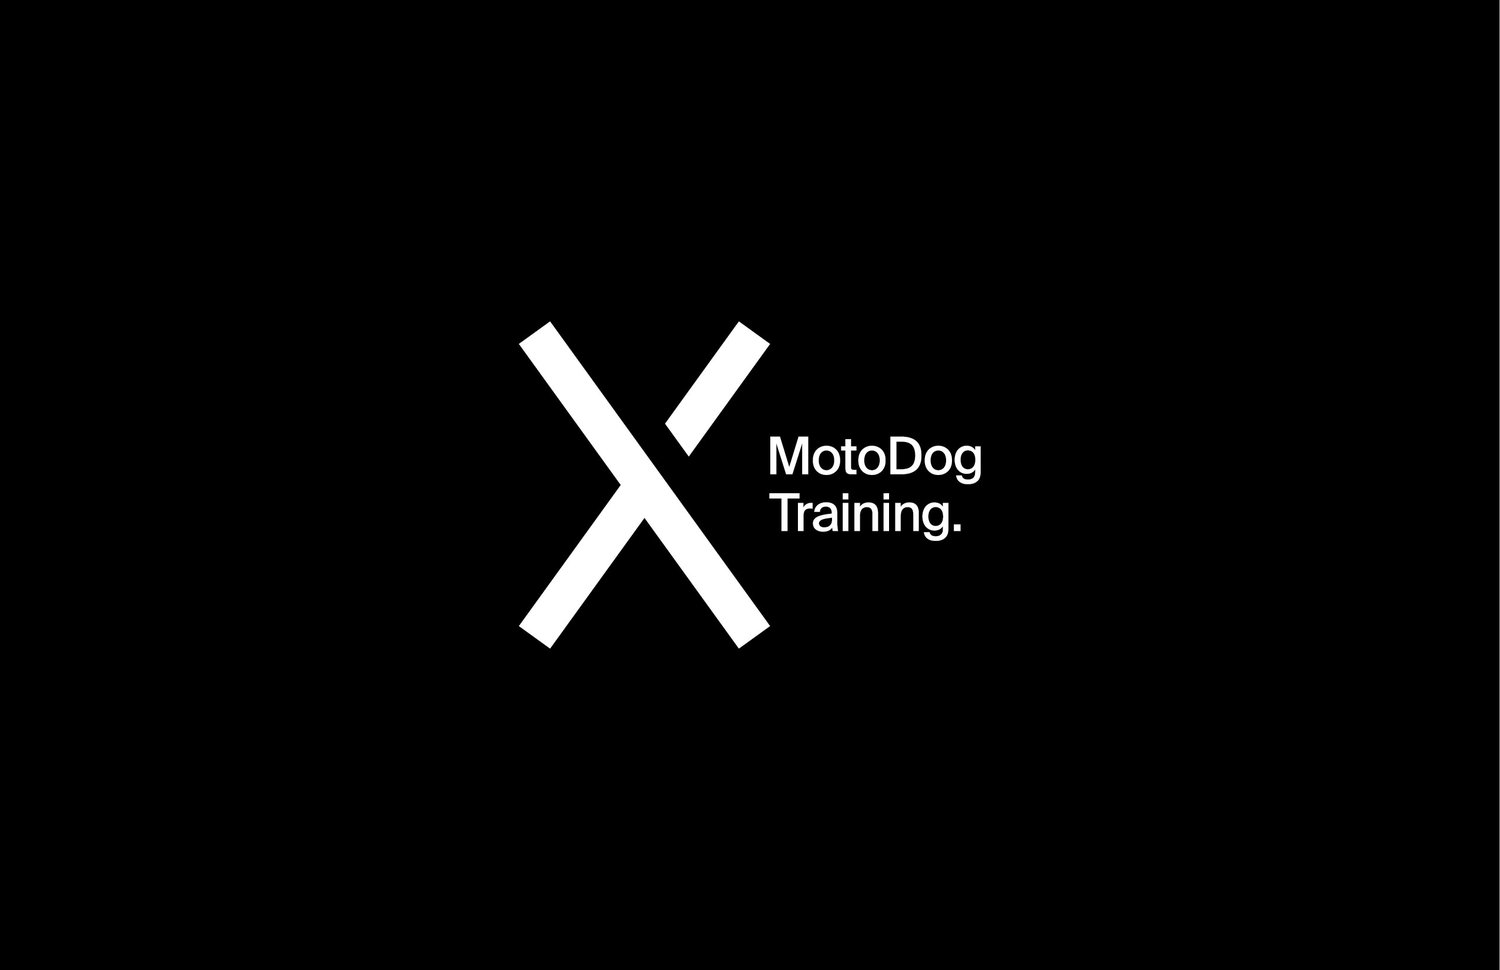 MotoDog Training